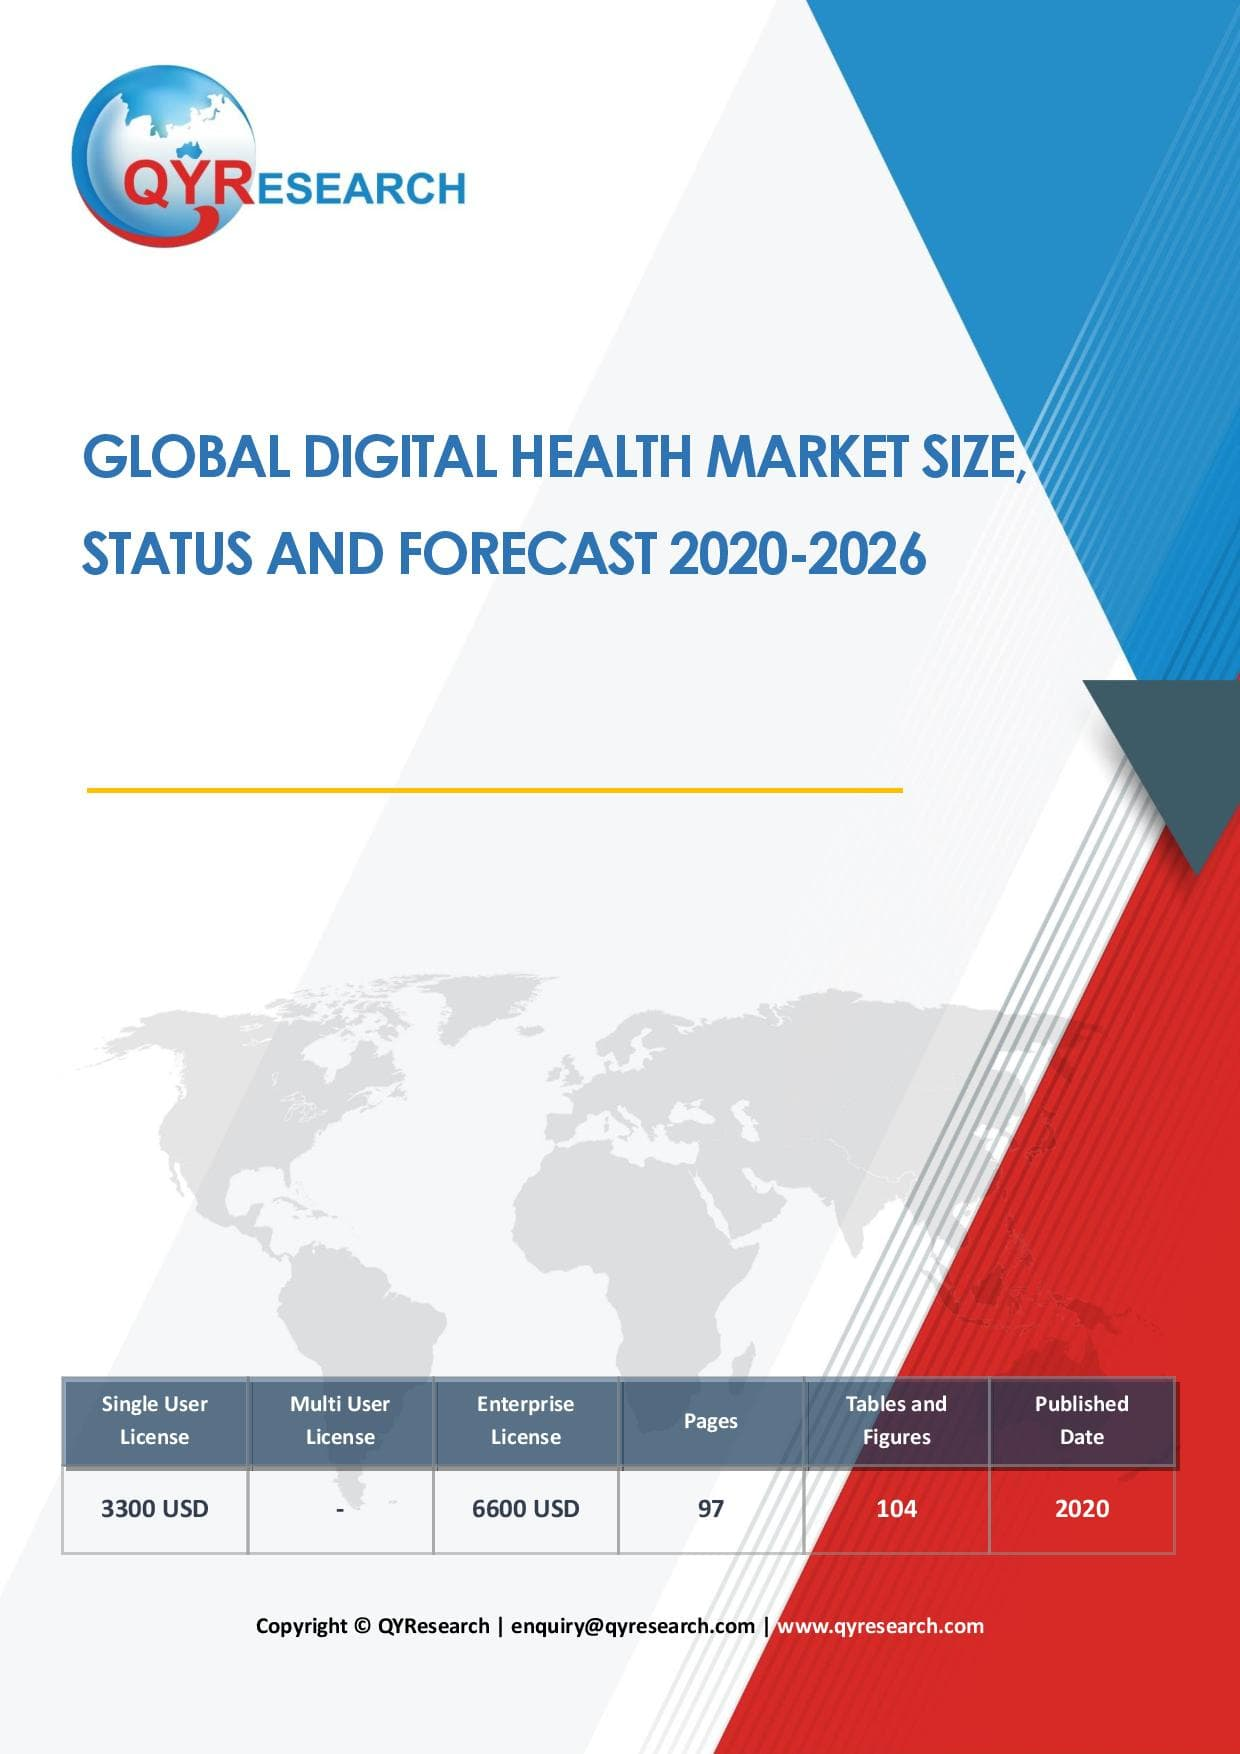 Global Digital Health Market Size Status and Forecast 2020 to 2026